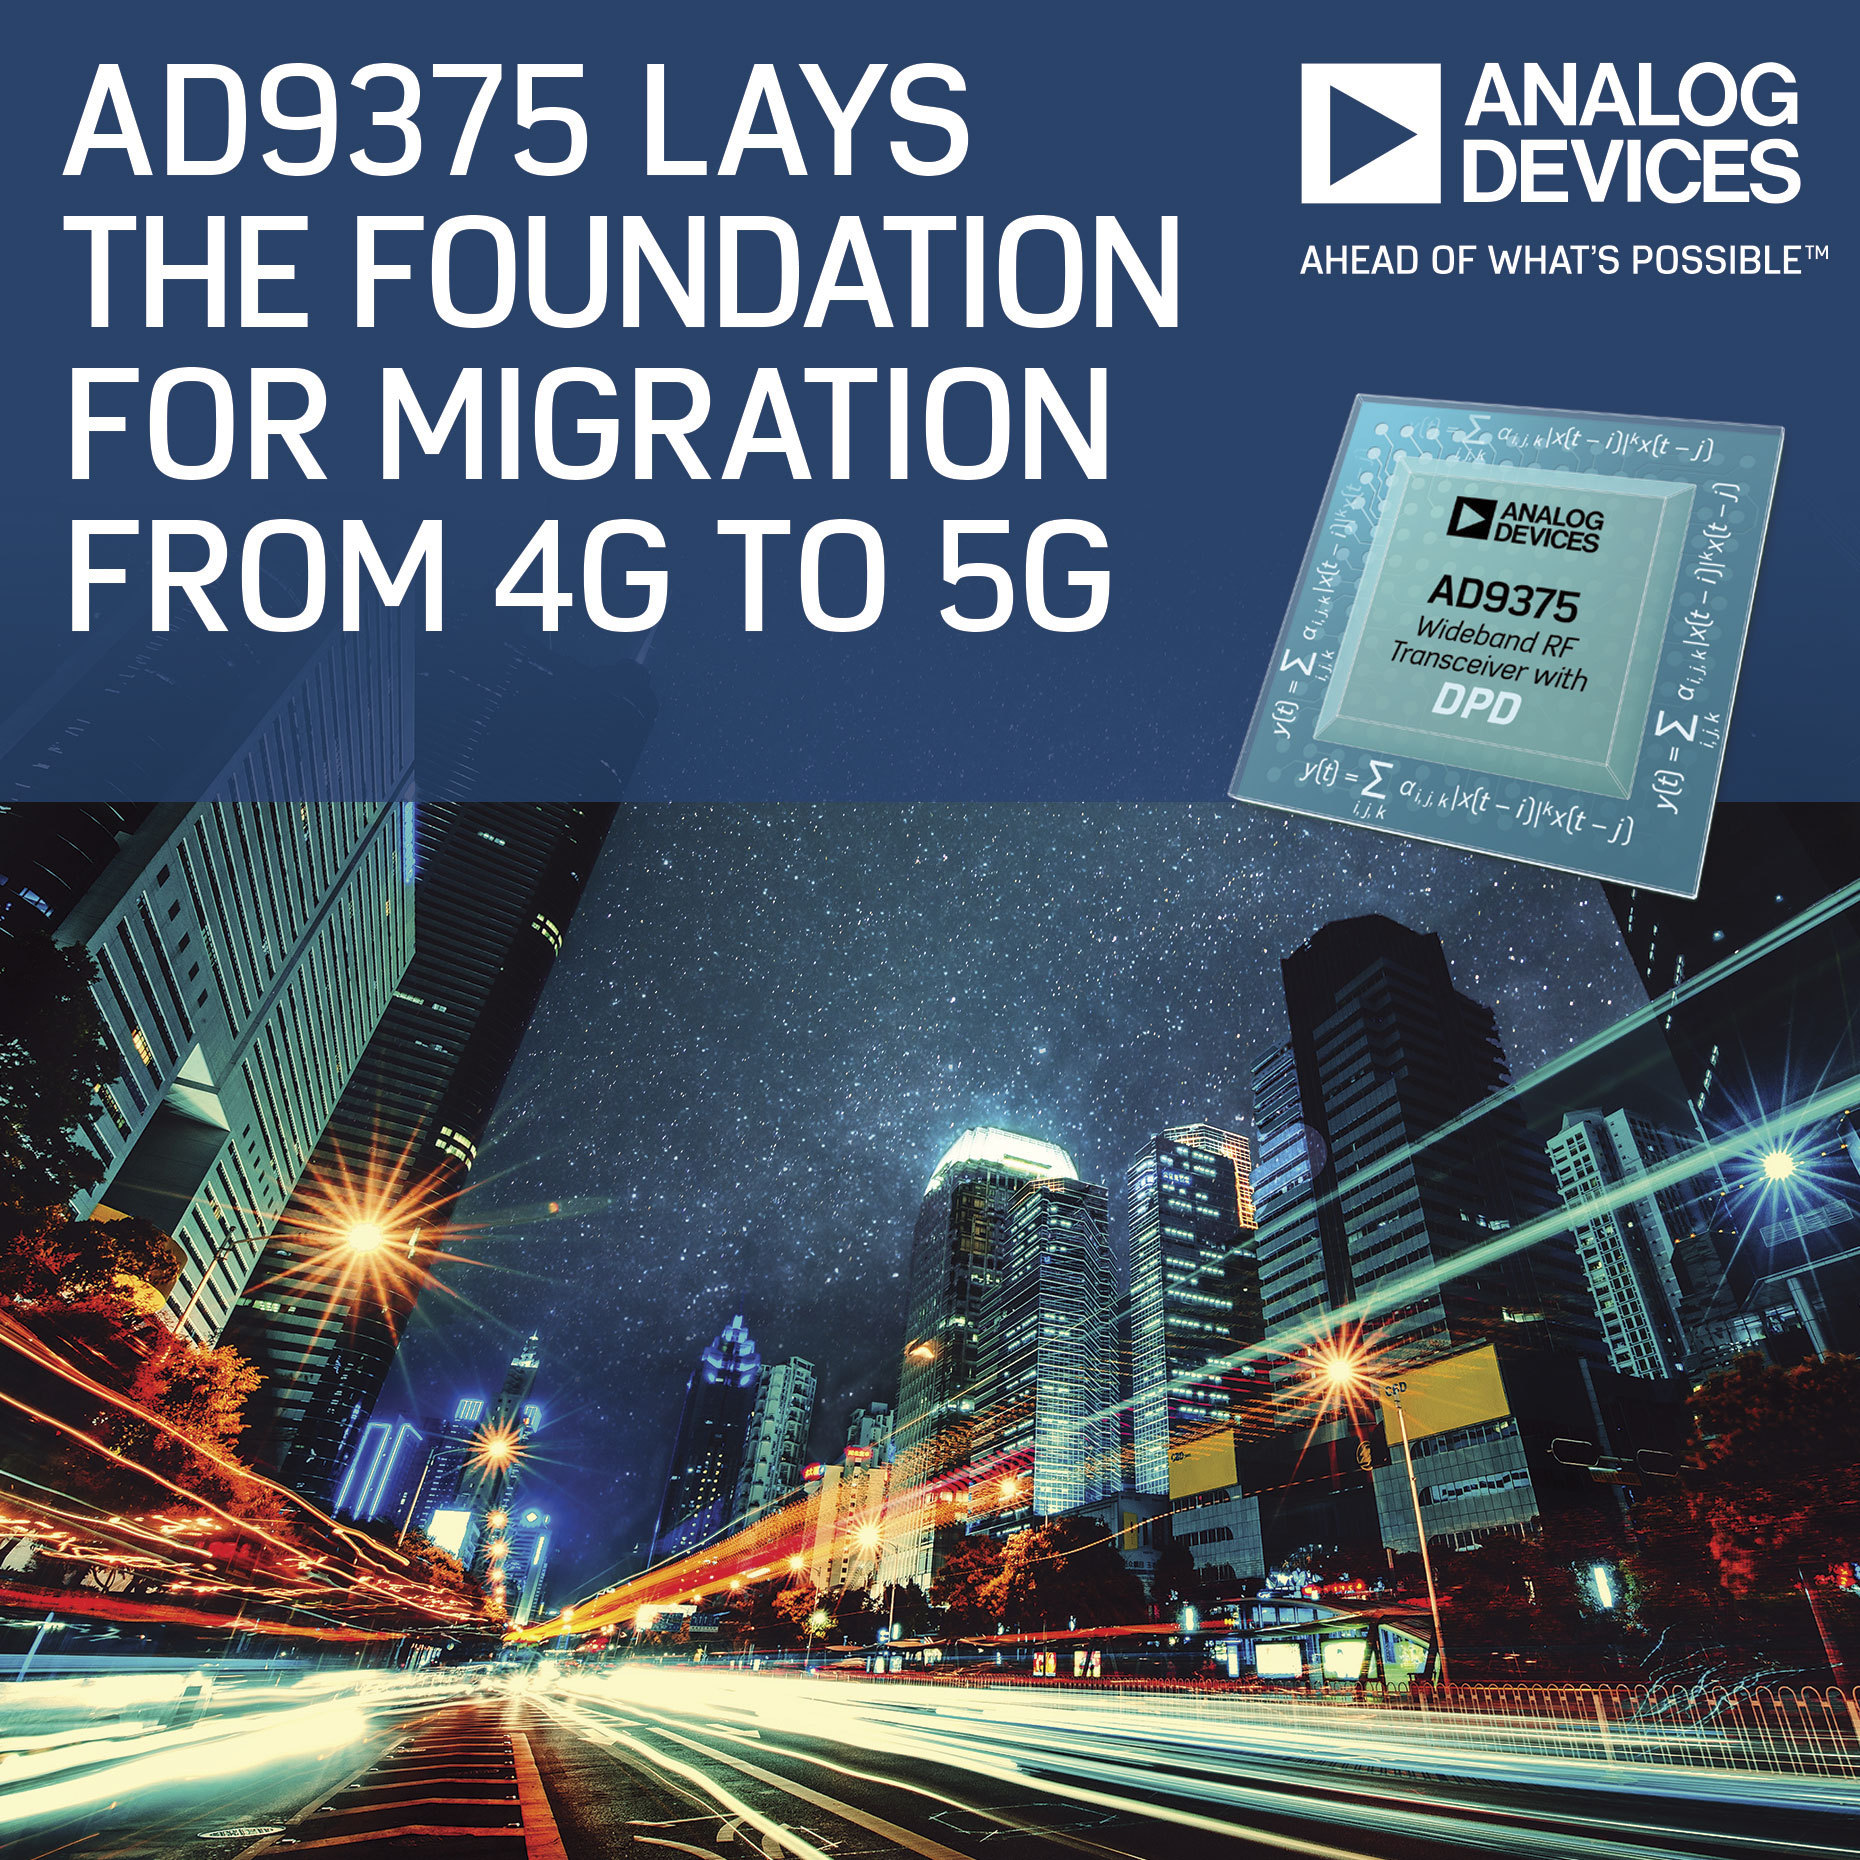 Analog Devices Lays Foundation for 4G to 5G Migration with Expanded